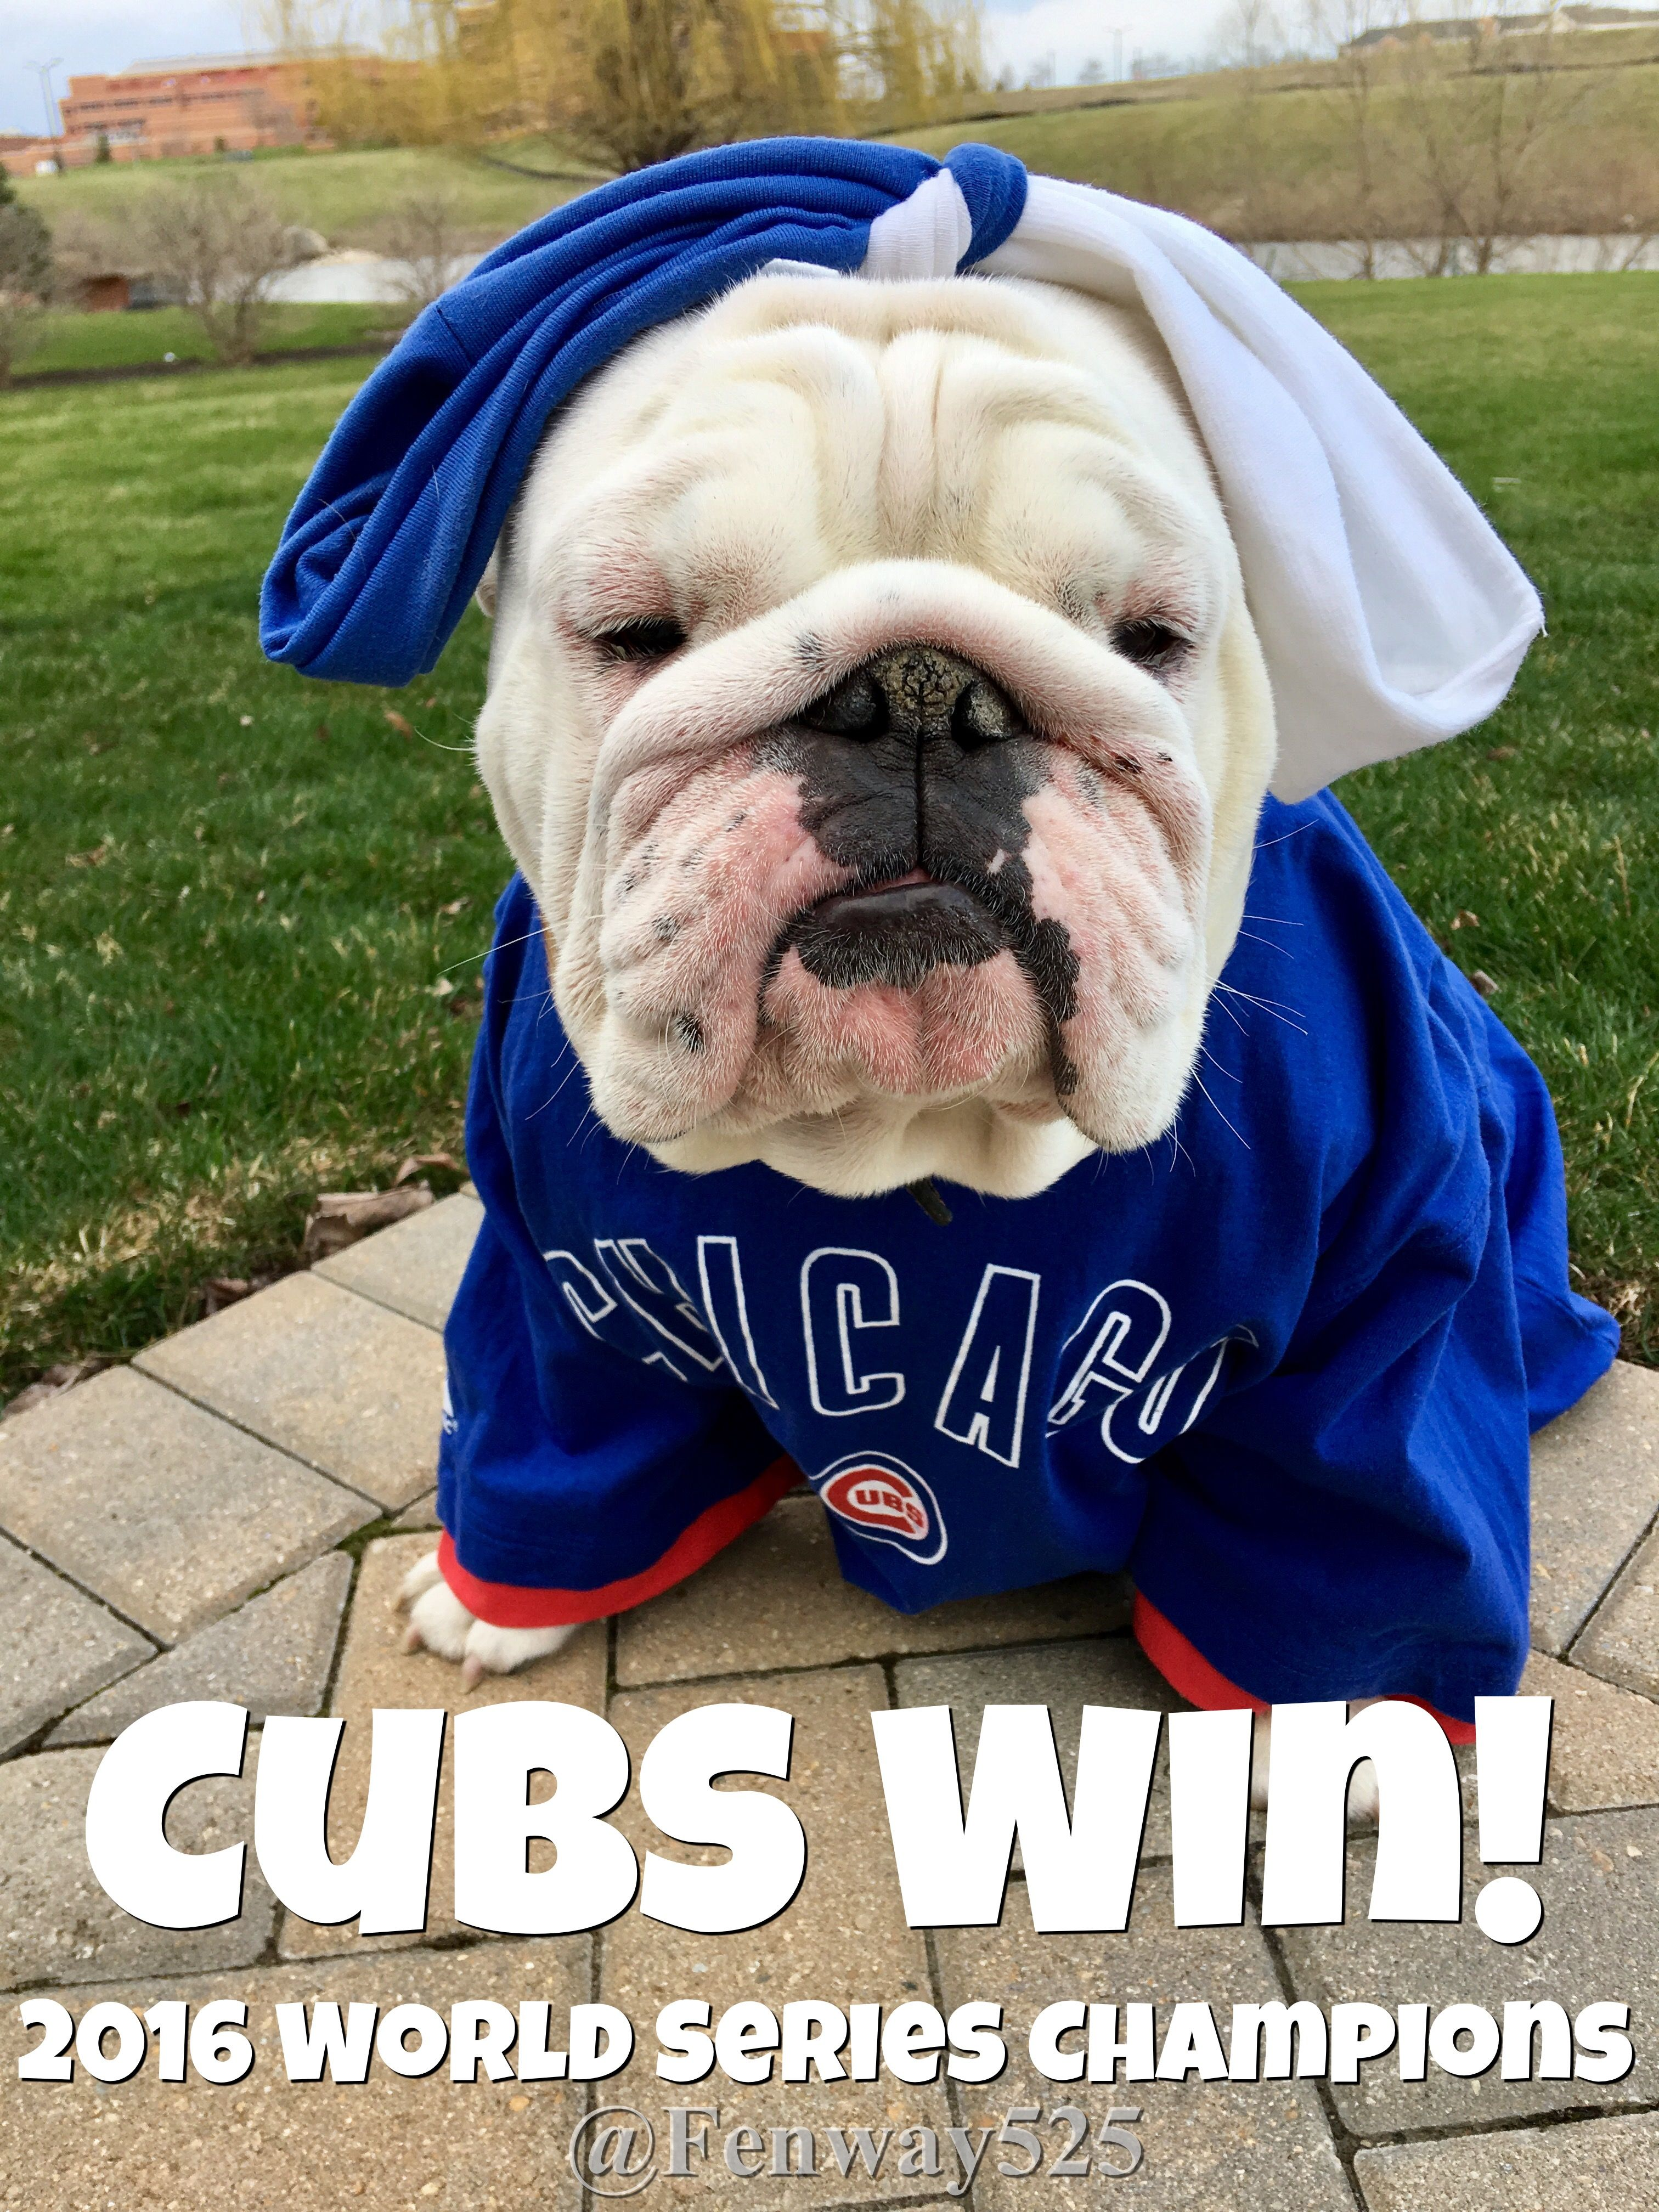 03nov16 Lola Bulldogs Chicago Cubs Baseball World Series